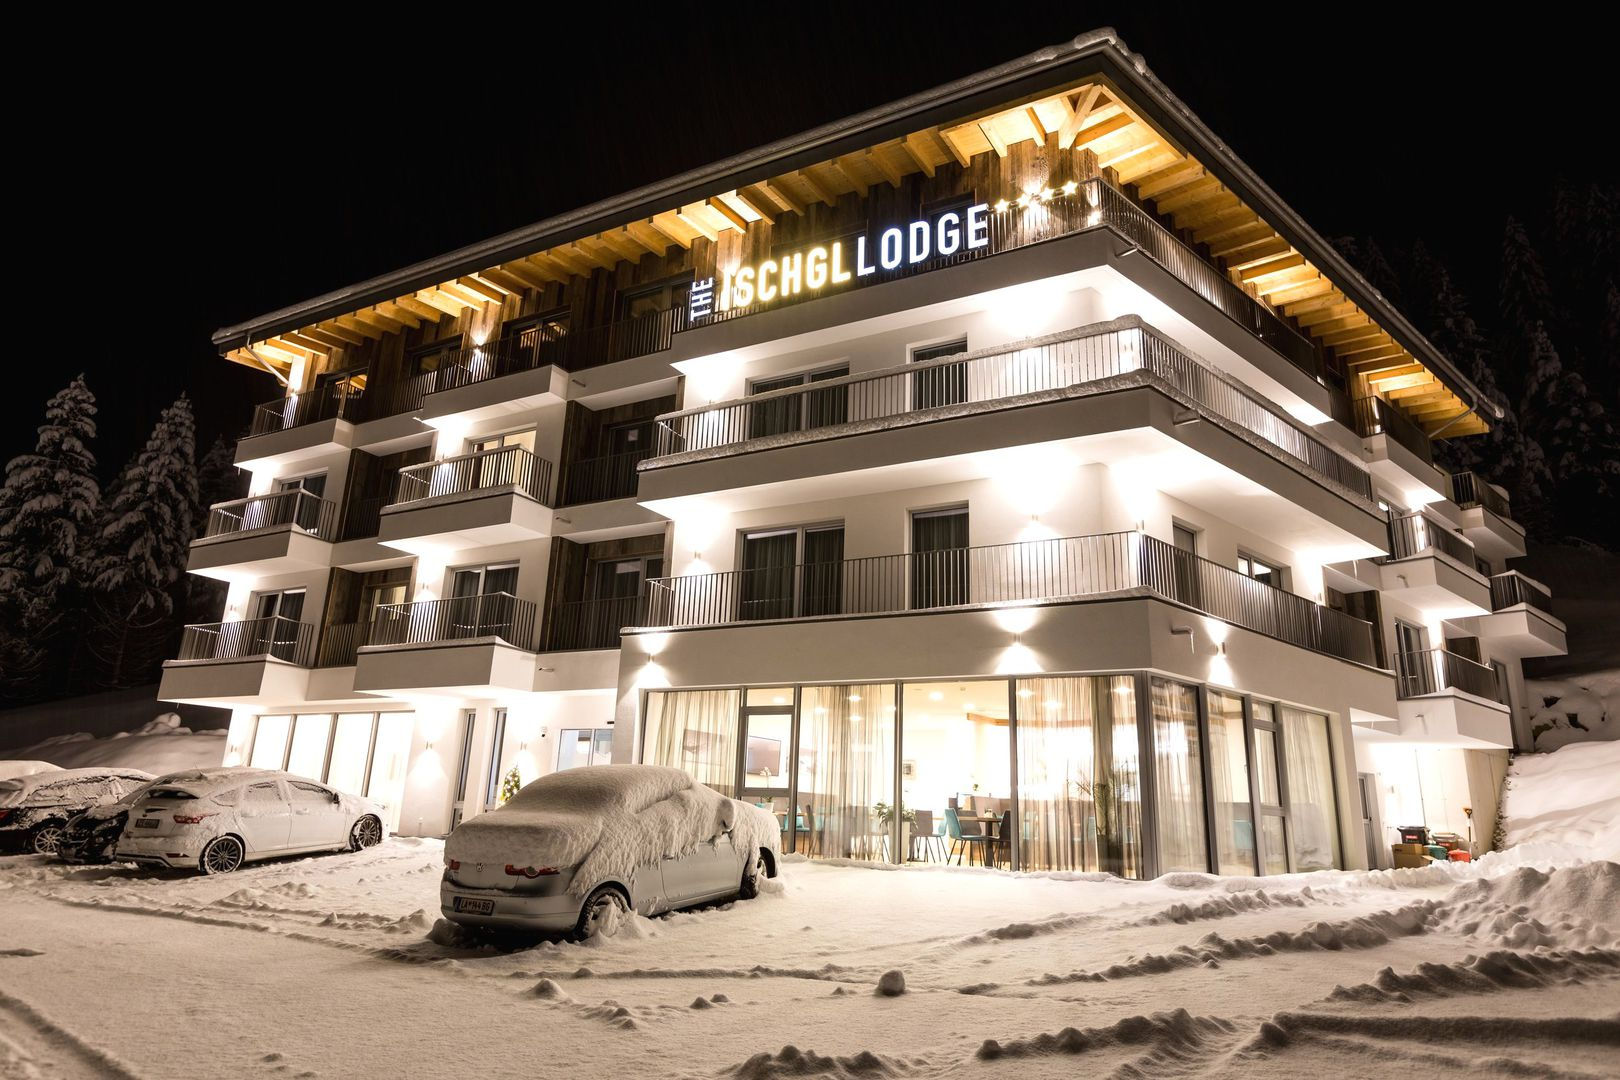 Slide1 - The Ischgl Lodge